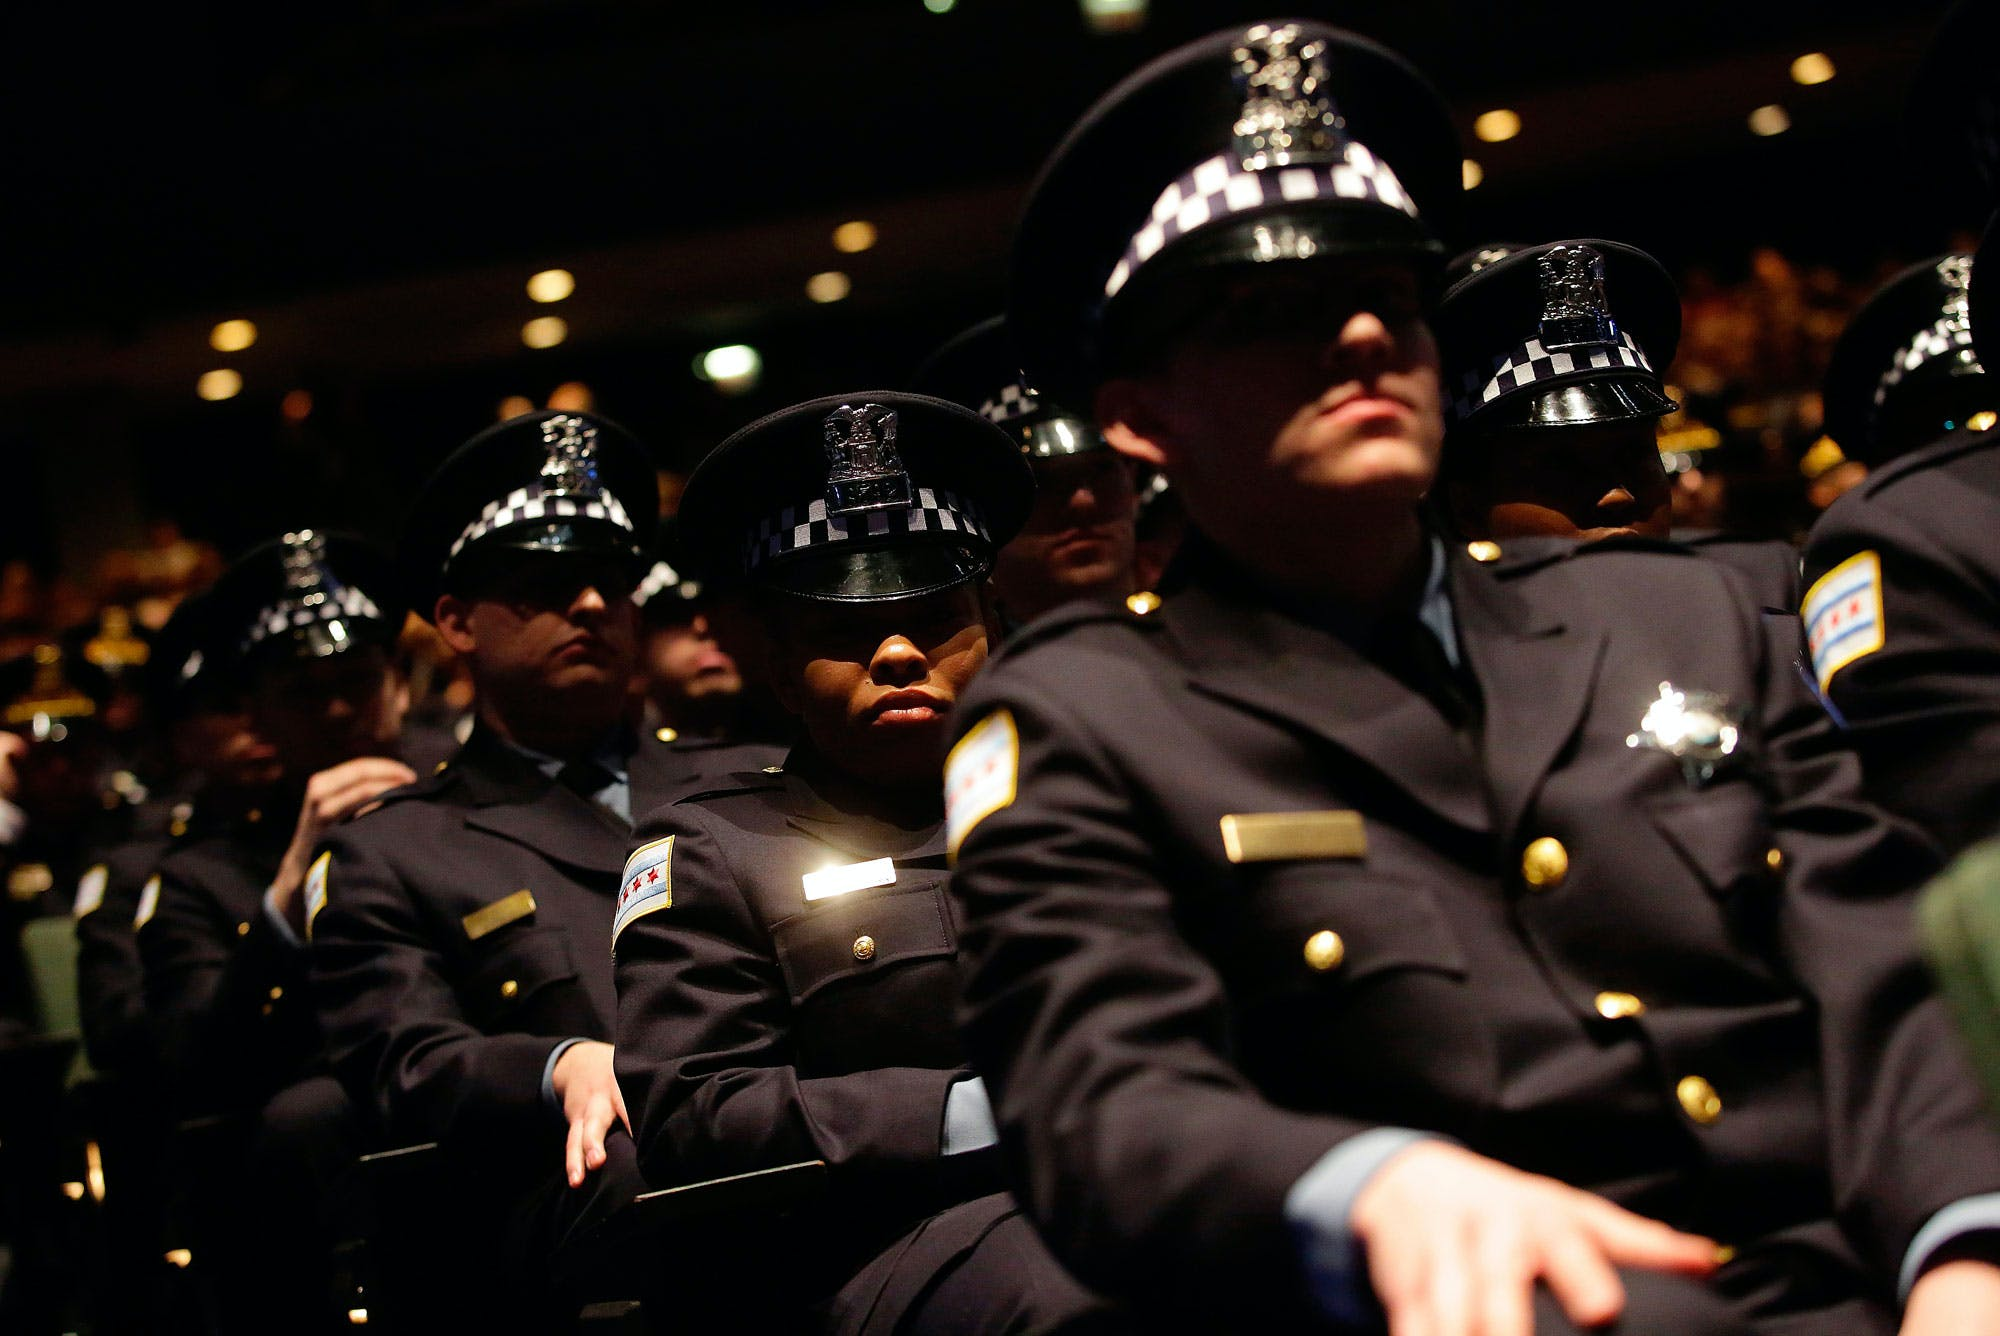 Wanna Be a Chicago Cop Smoking Pot Will No Longer Disqualify You 1 Cannabis Consumers Would Rather Pay a Premium Than Buy Product From the Black Market: Study